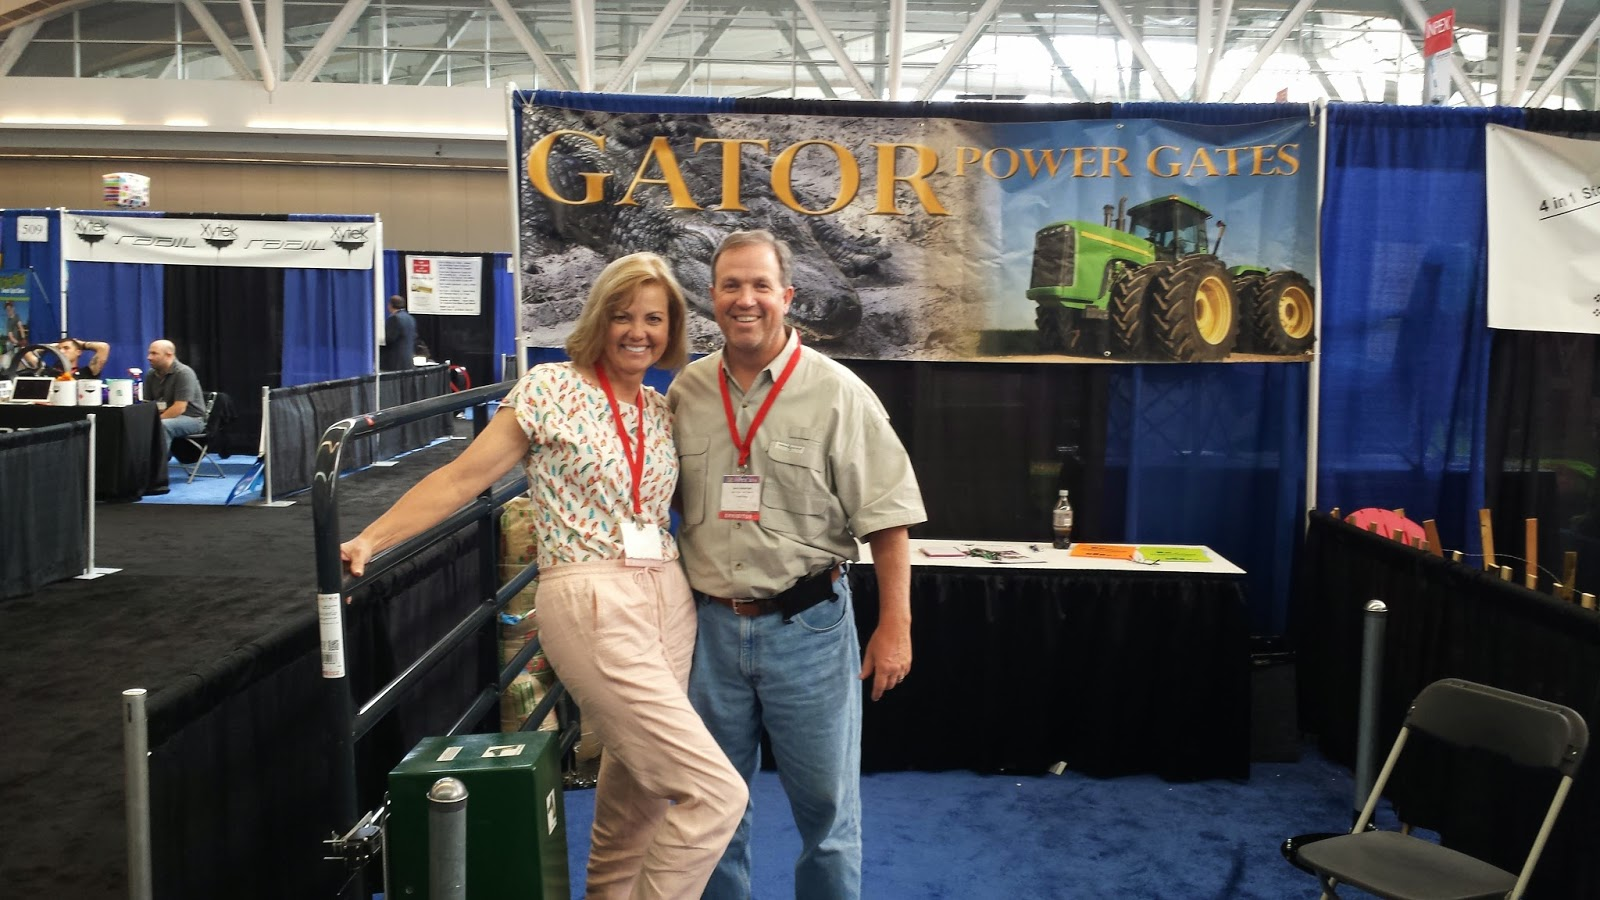 Gator Power Gates, Inc. at INPEX